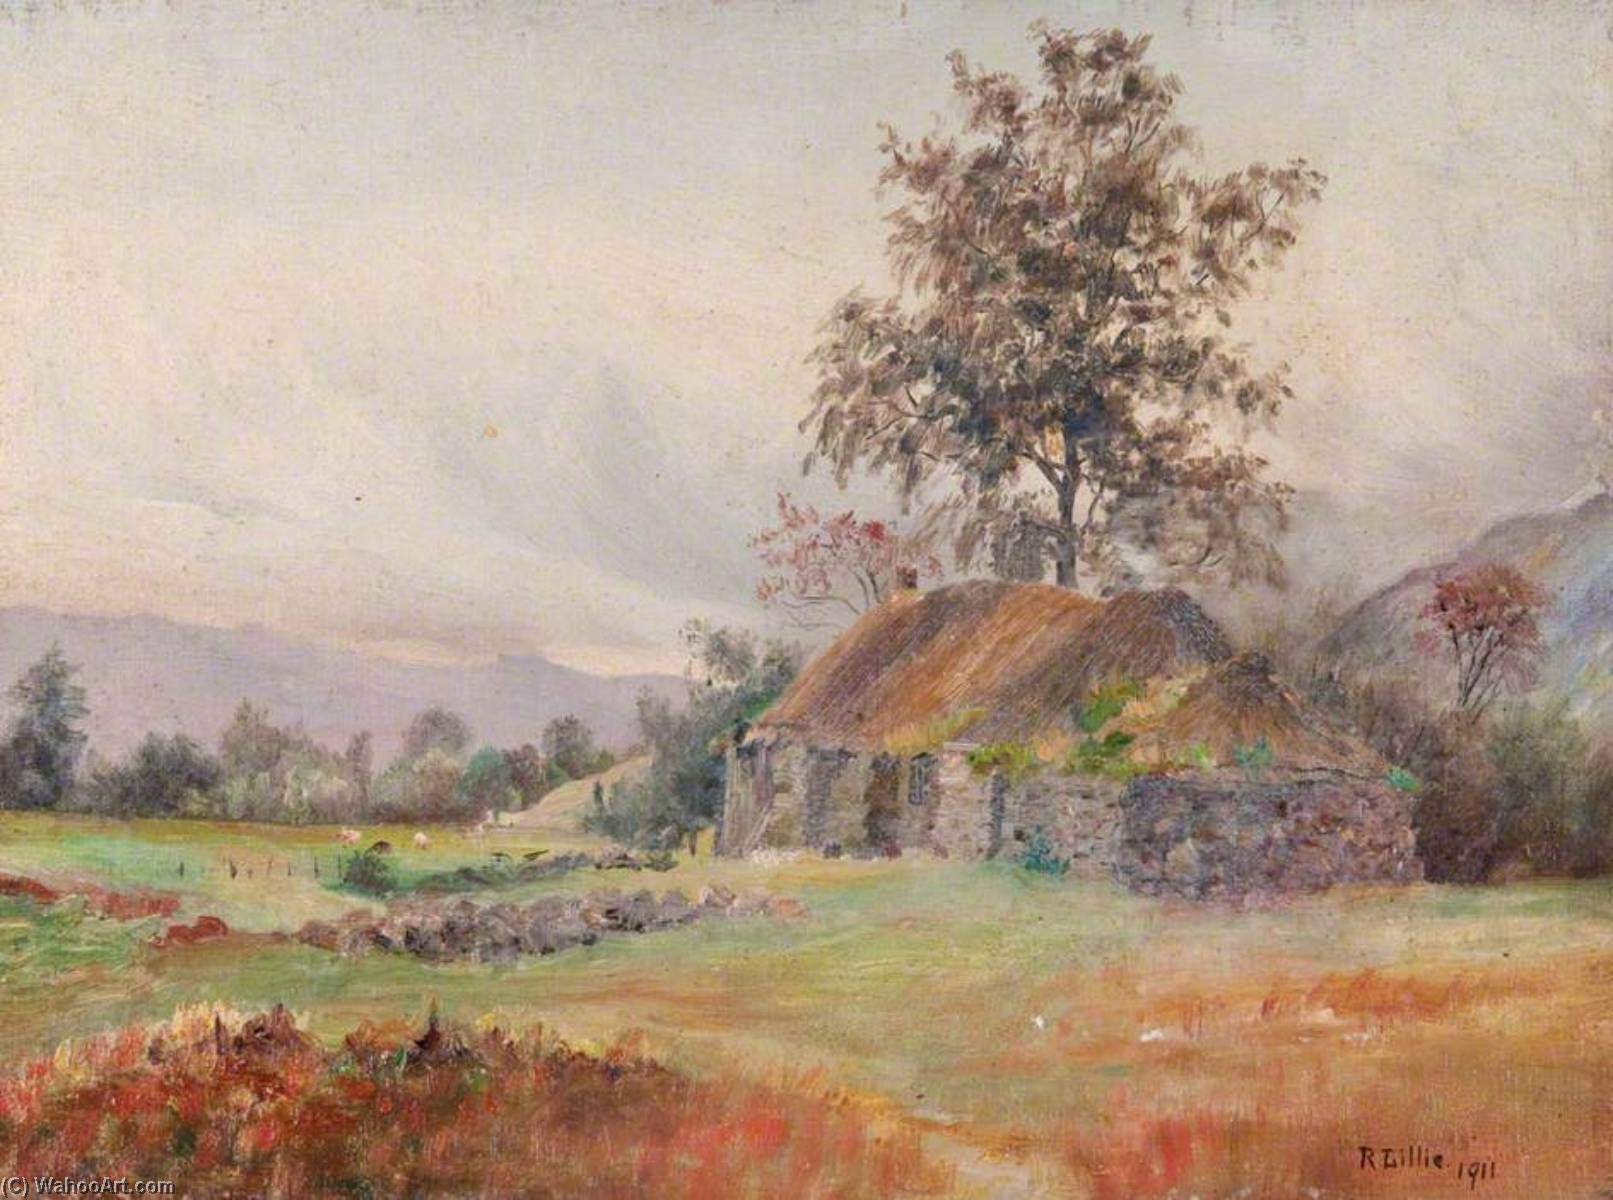 Gîte glen strae , Dalmally, 1911 de Robert Lillie | Reproductions D'art Sur Toile | WahooArt.com